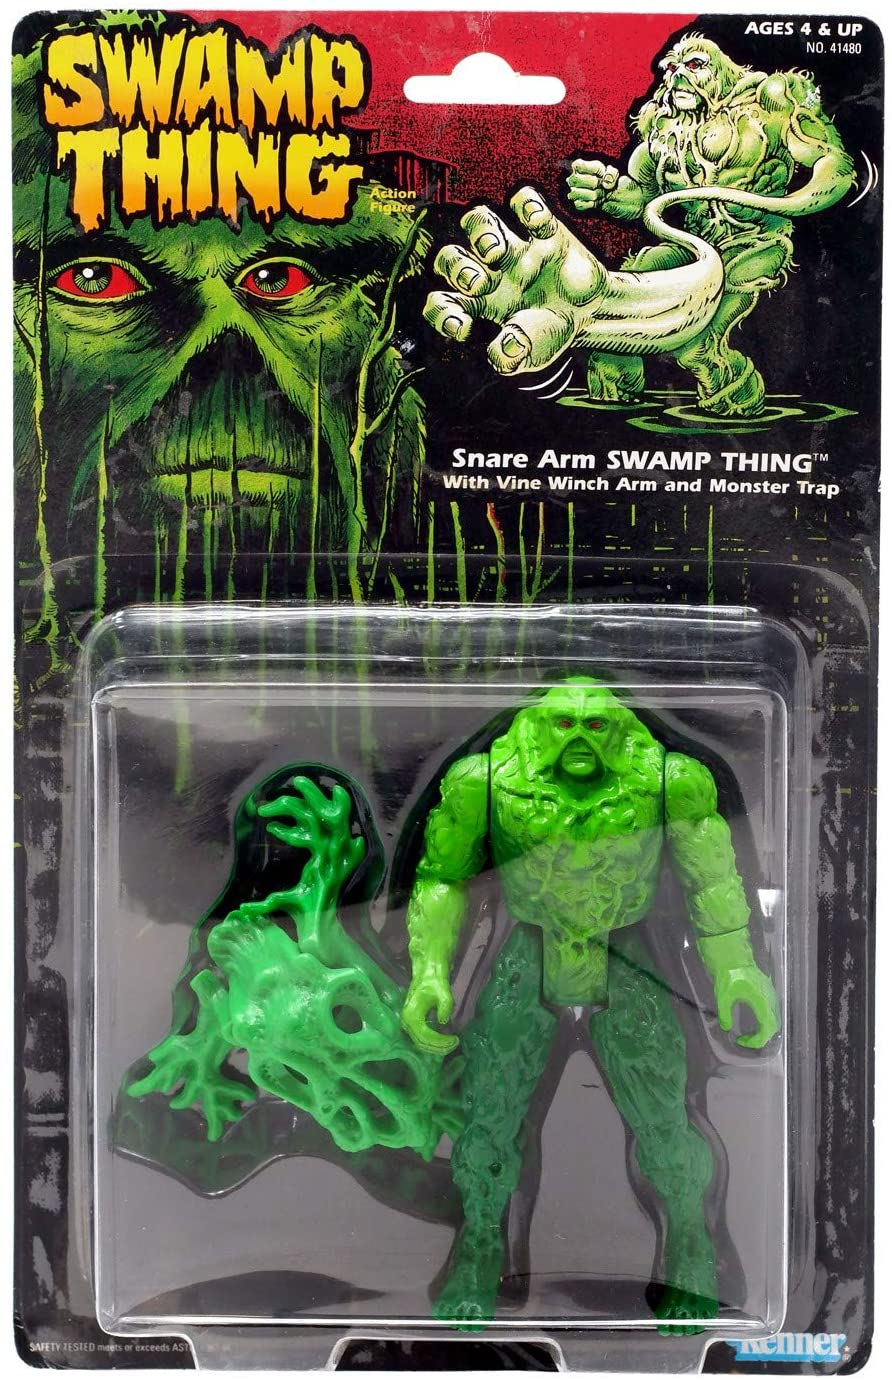 Swamp Thing Snare Arm